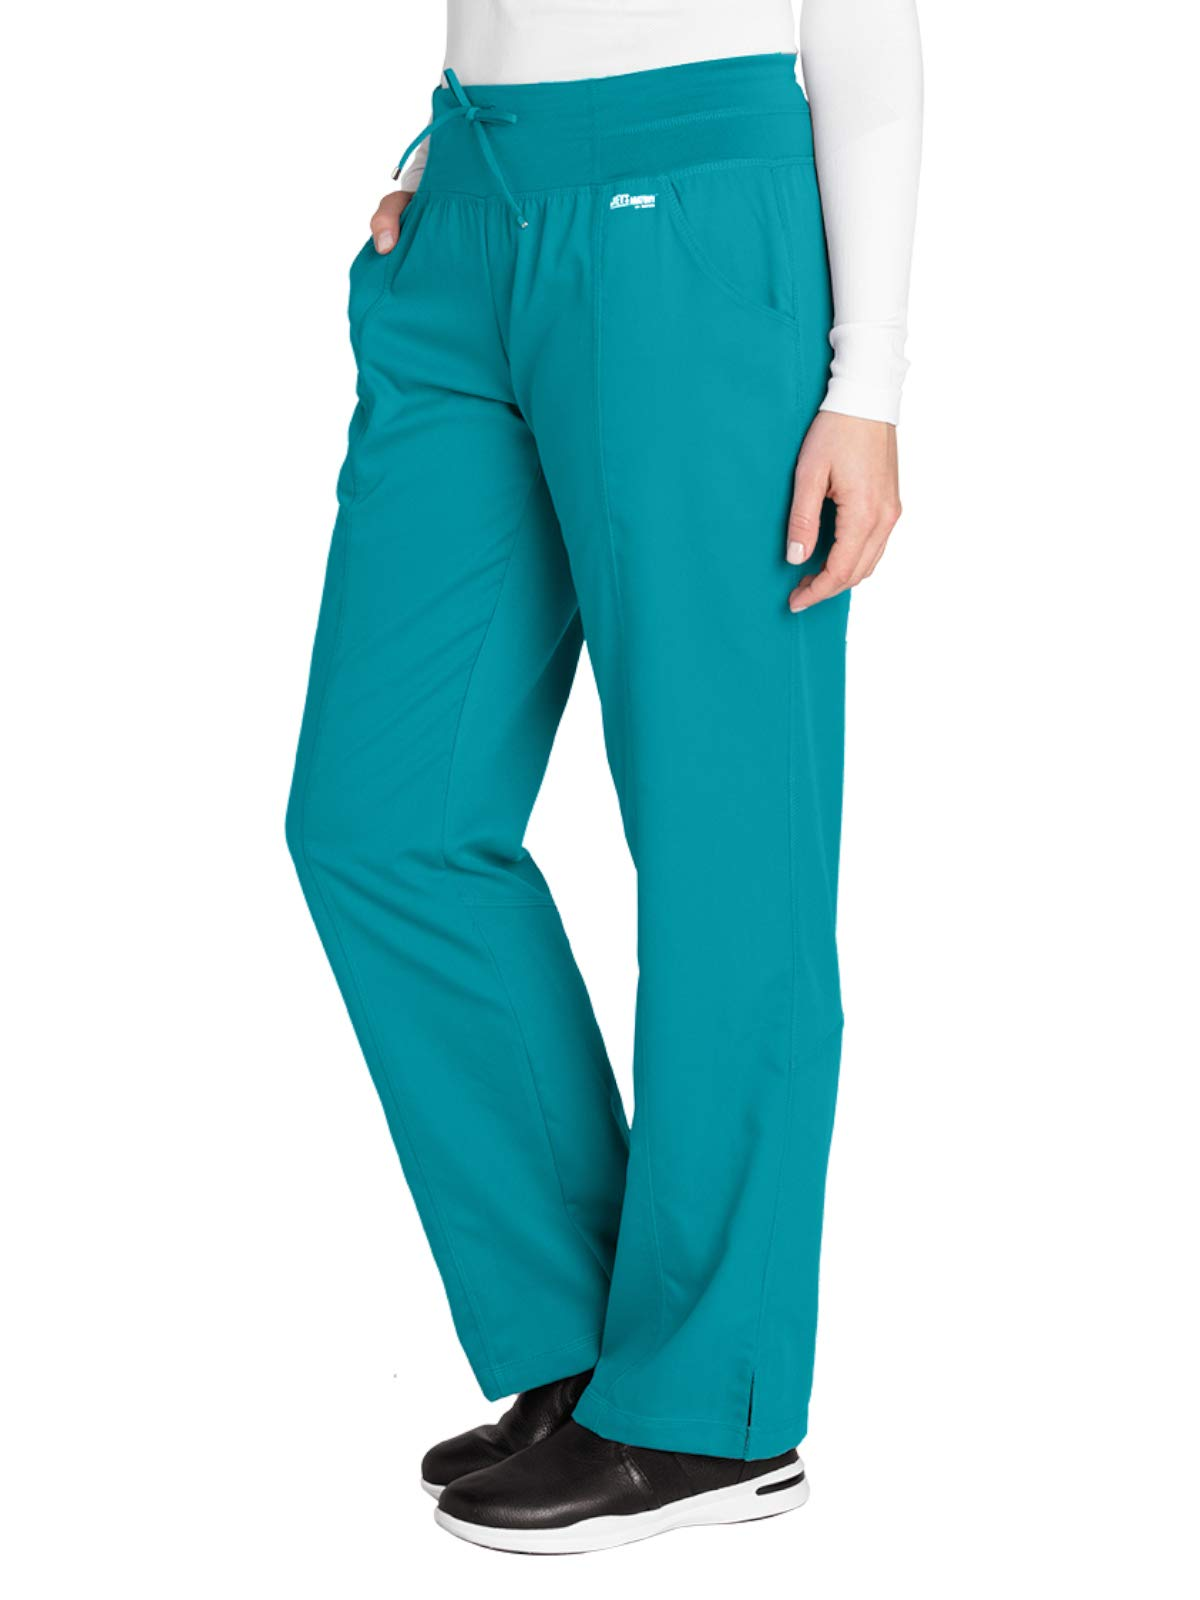 Grey's Anatomy Active 4276 Yoga Pant Teal L